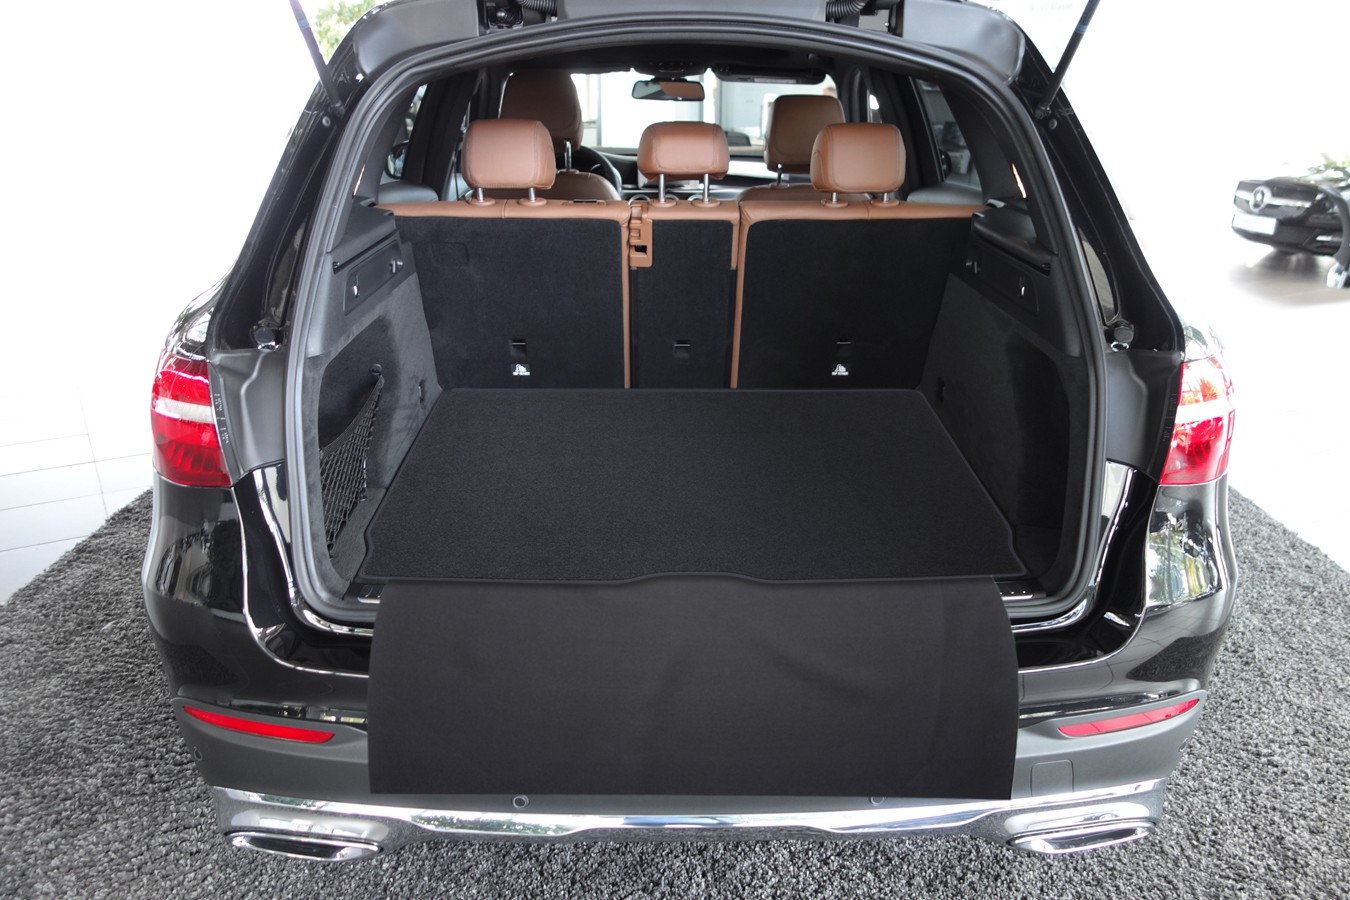 2 pi ces tapis de sol de voitures du coffre pour mercedes glc x253 ann e 09 2015 tapis de. Black Bedroom Furniture Sets. Home Design Ideas